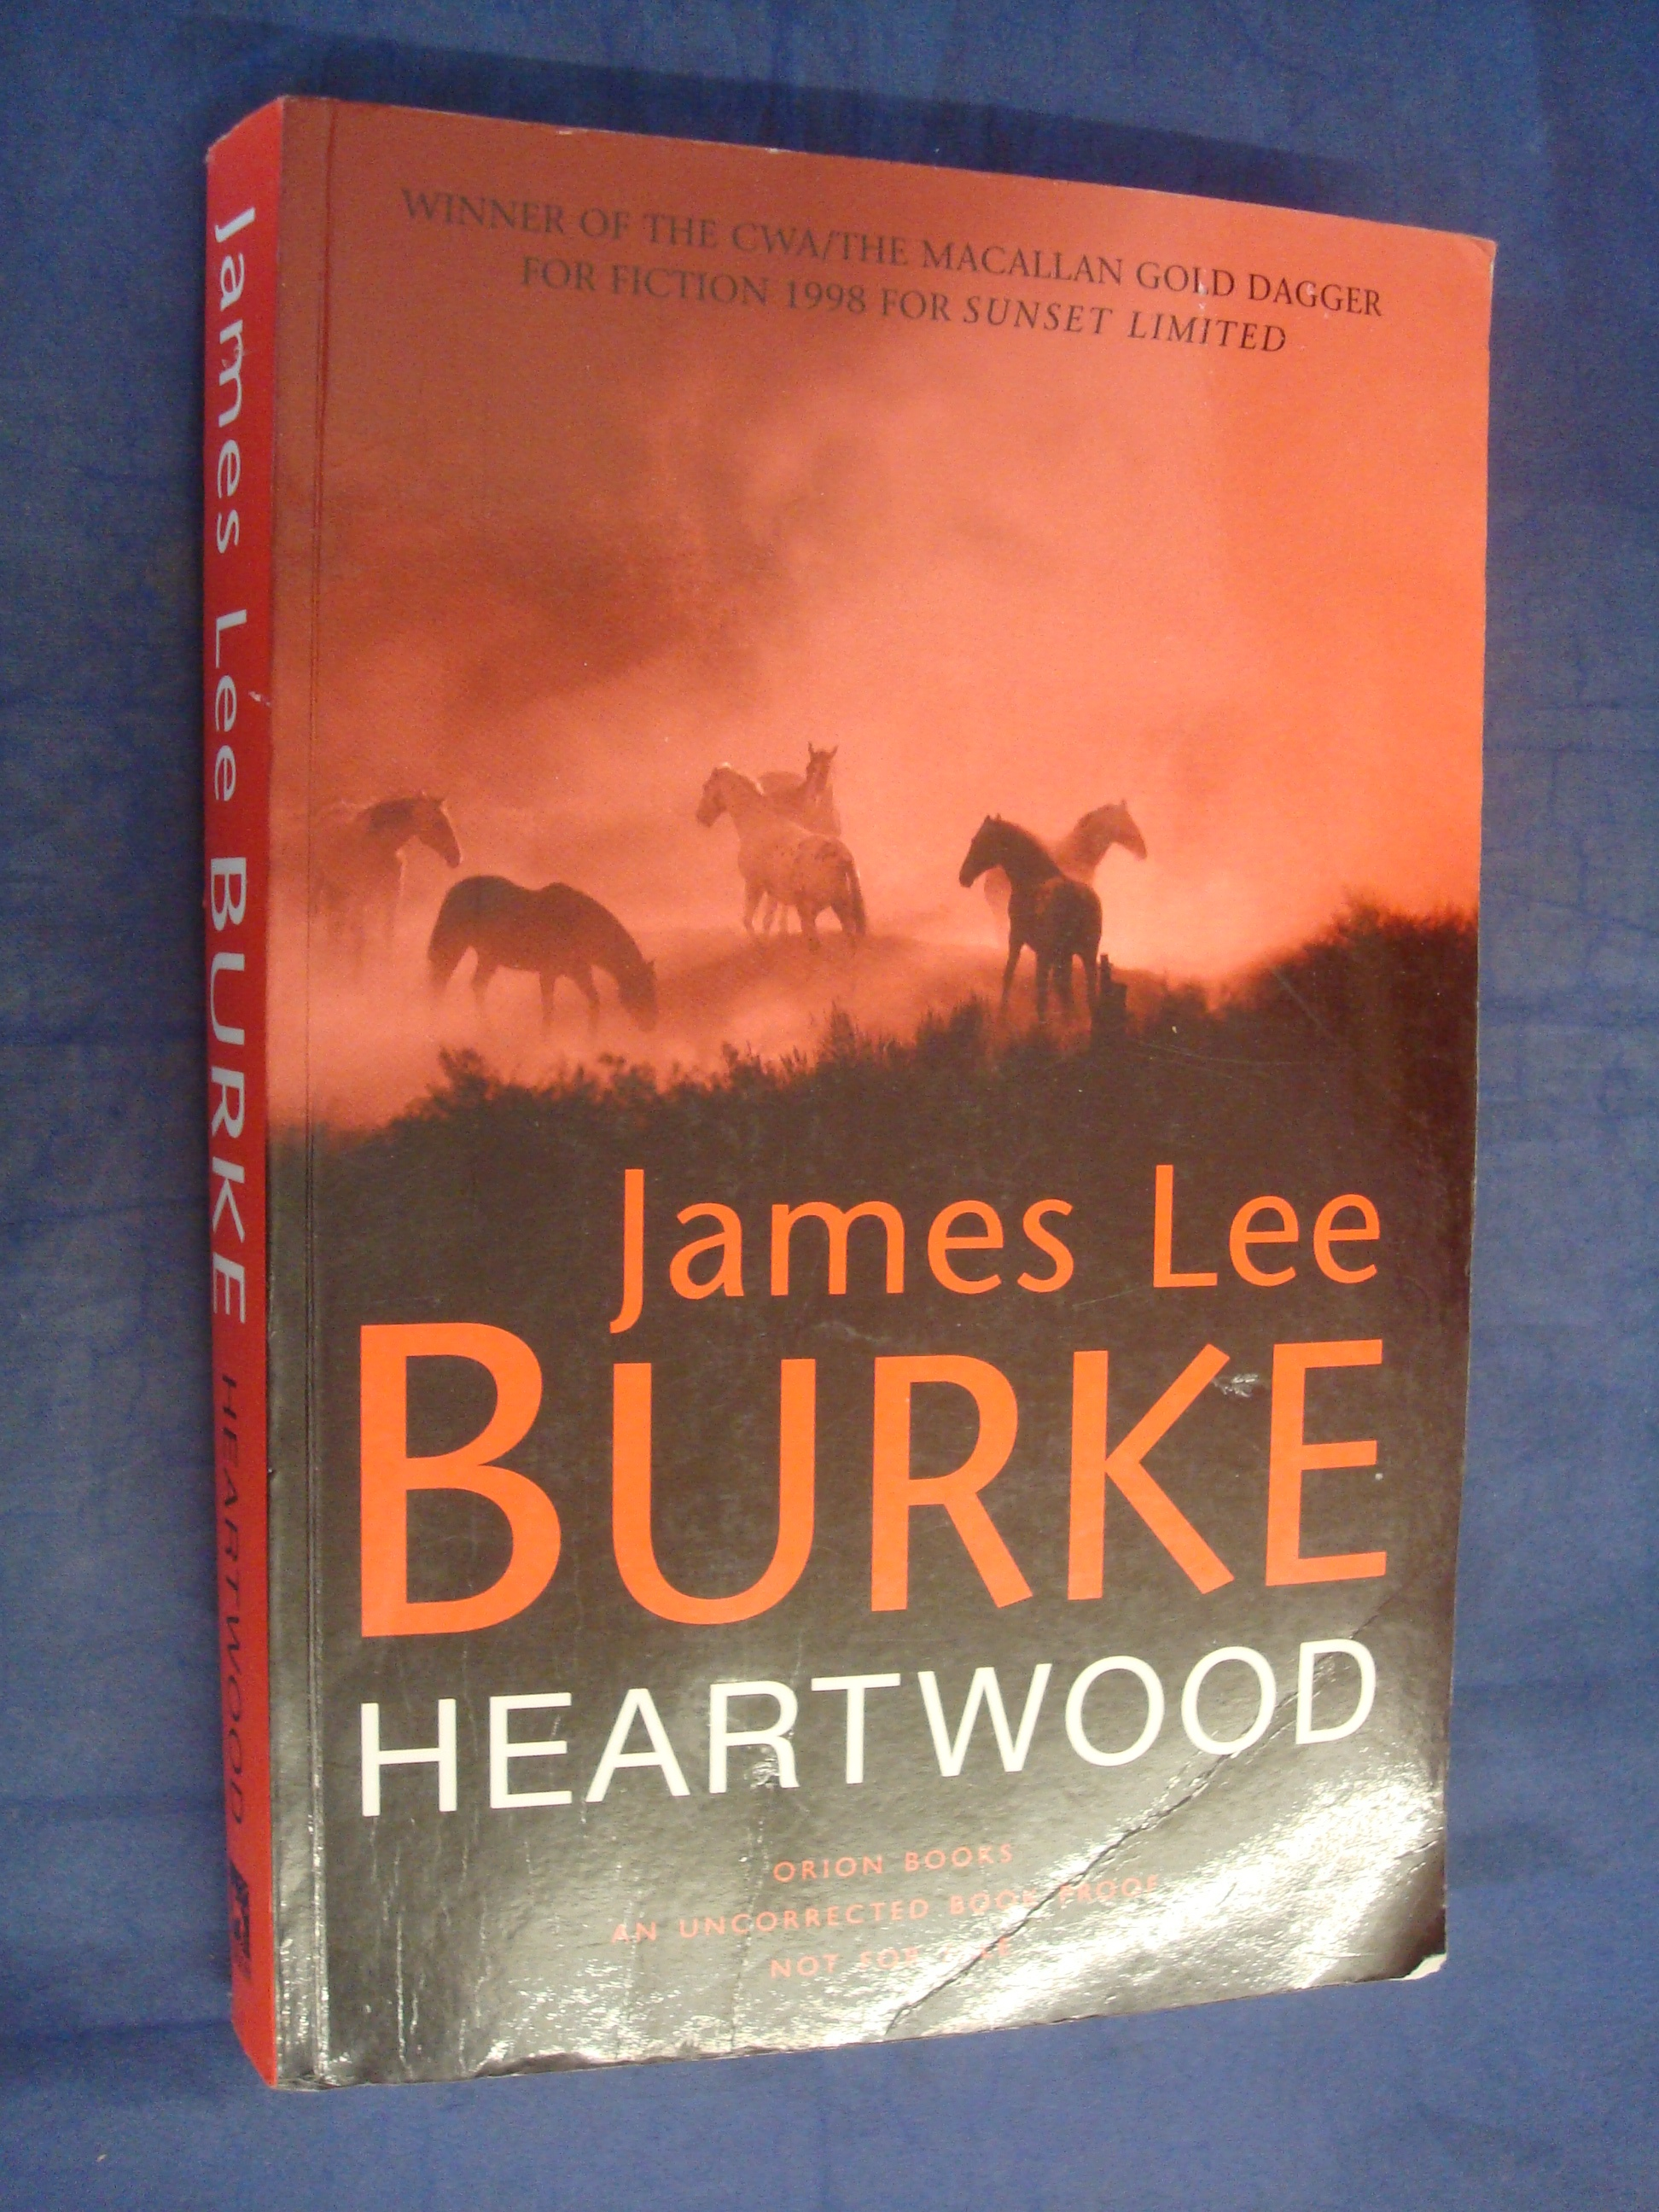 essays on heartwood by james lee burke Heartwood download heartwood few writers in america today combine james lee burke's lush prose, crackling story lines essays family fashion fiction game.